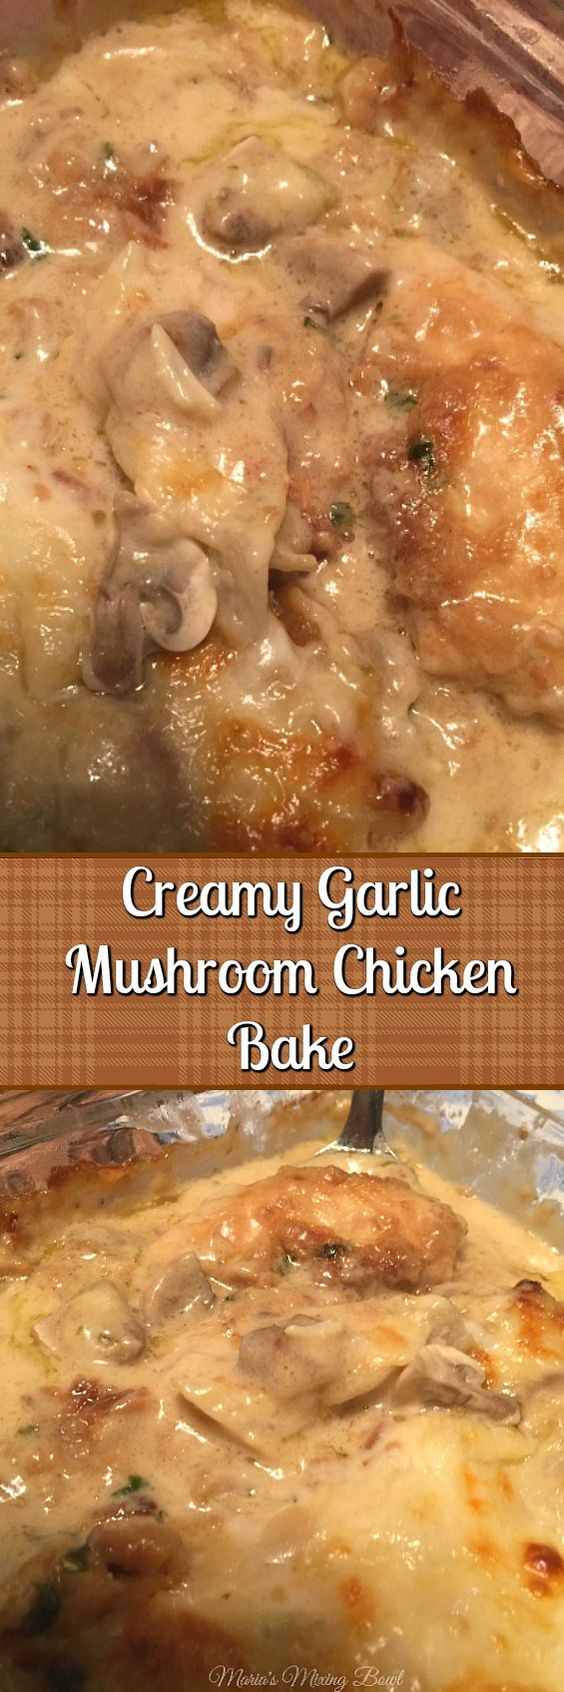 Creamy Garlic Mushroom Chicken Bake - This simple, delicious and easy saucy chicken is so yummy! One of our favorite go to meals.